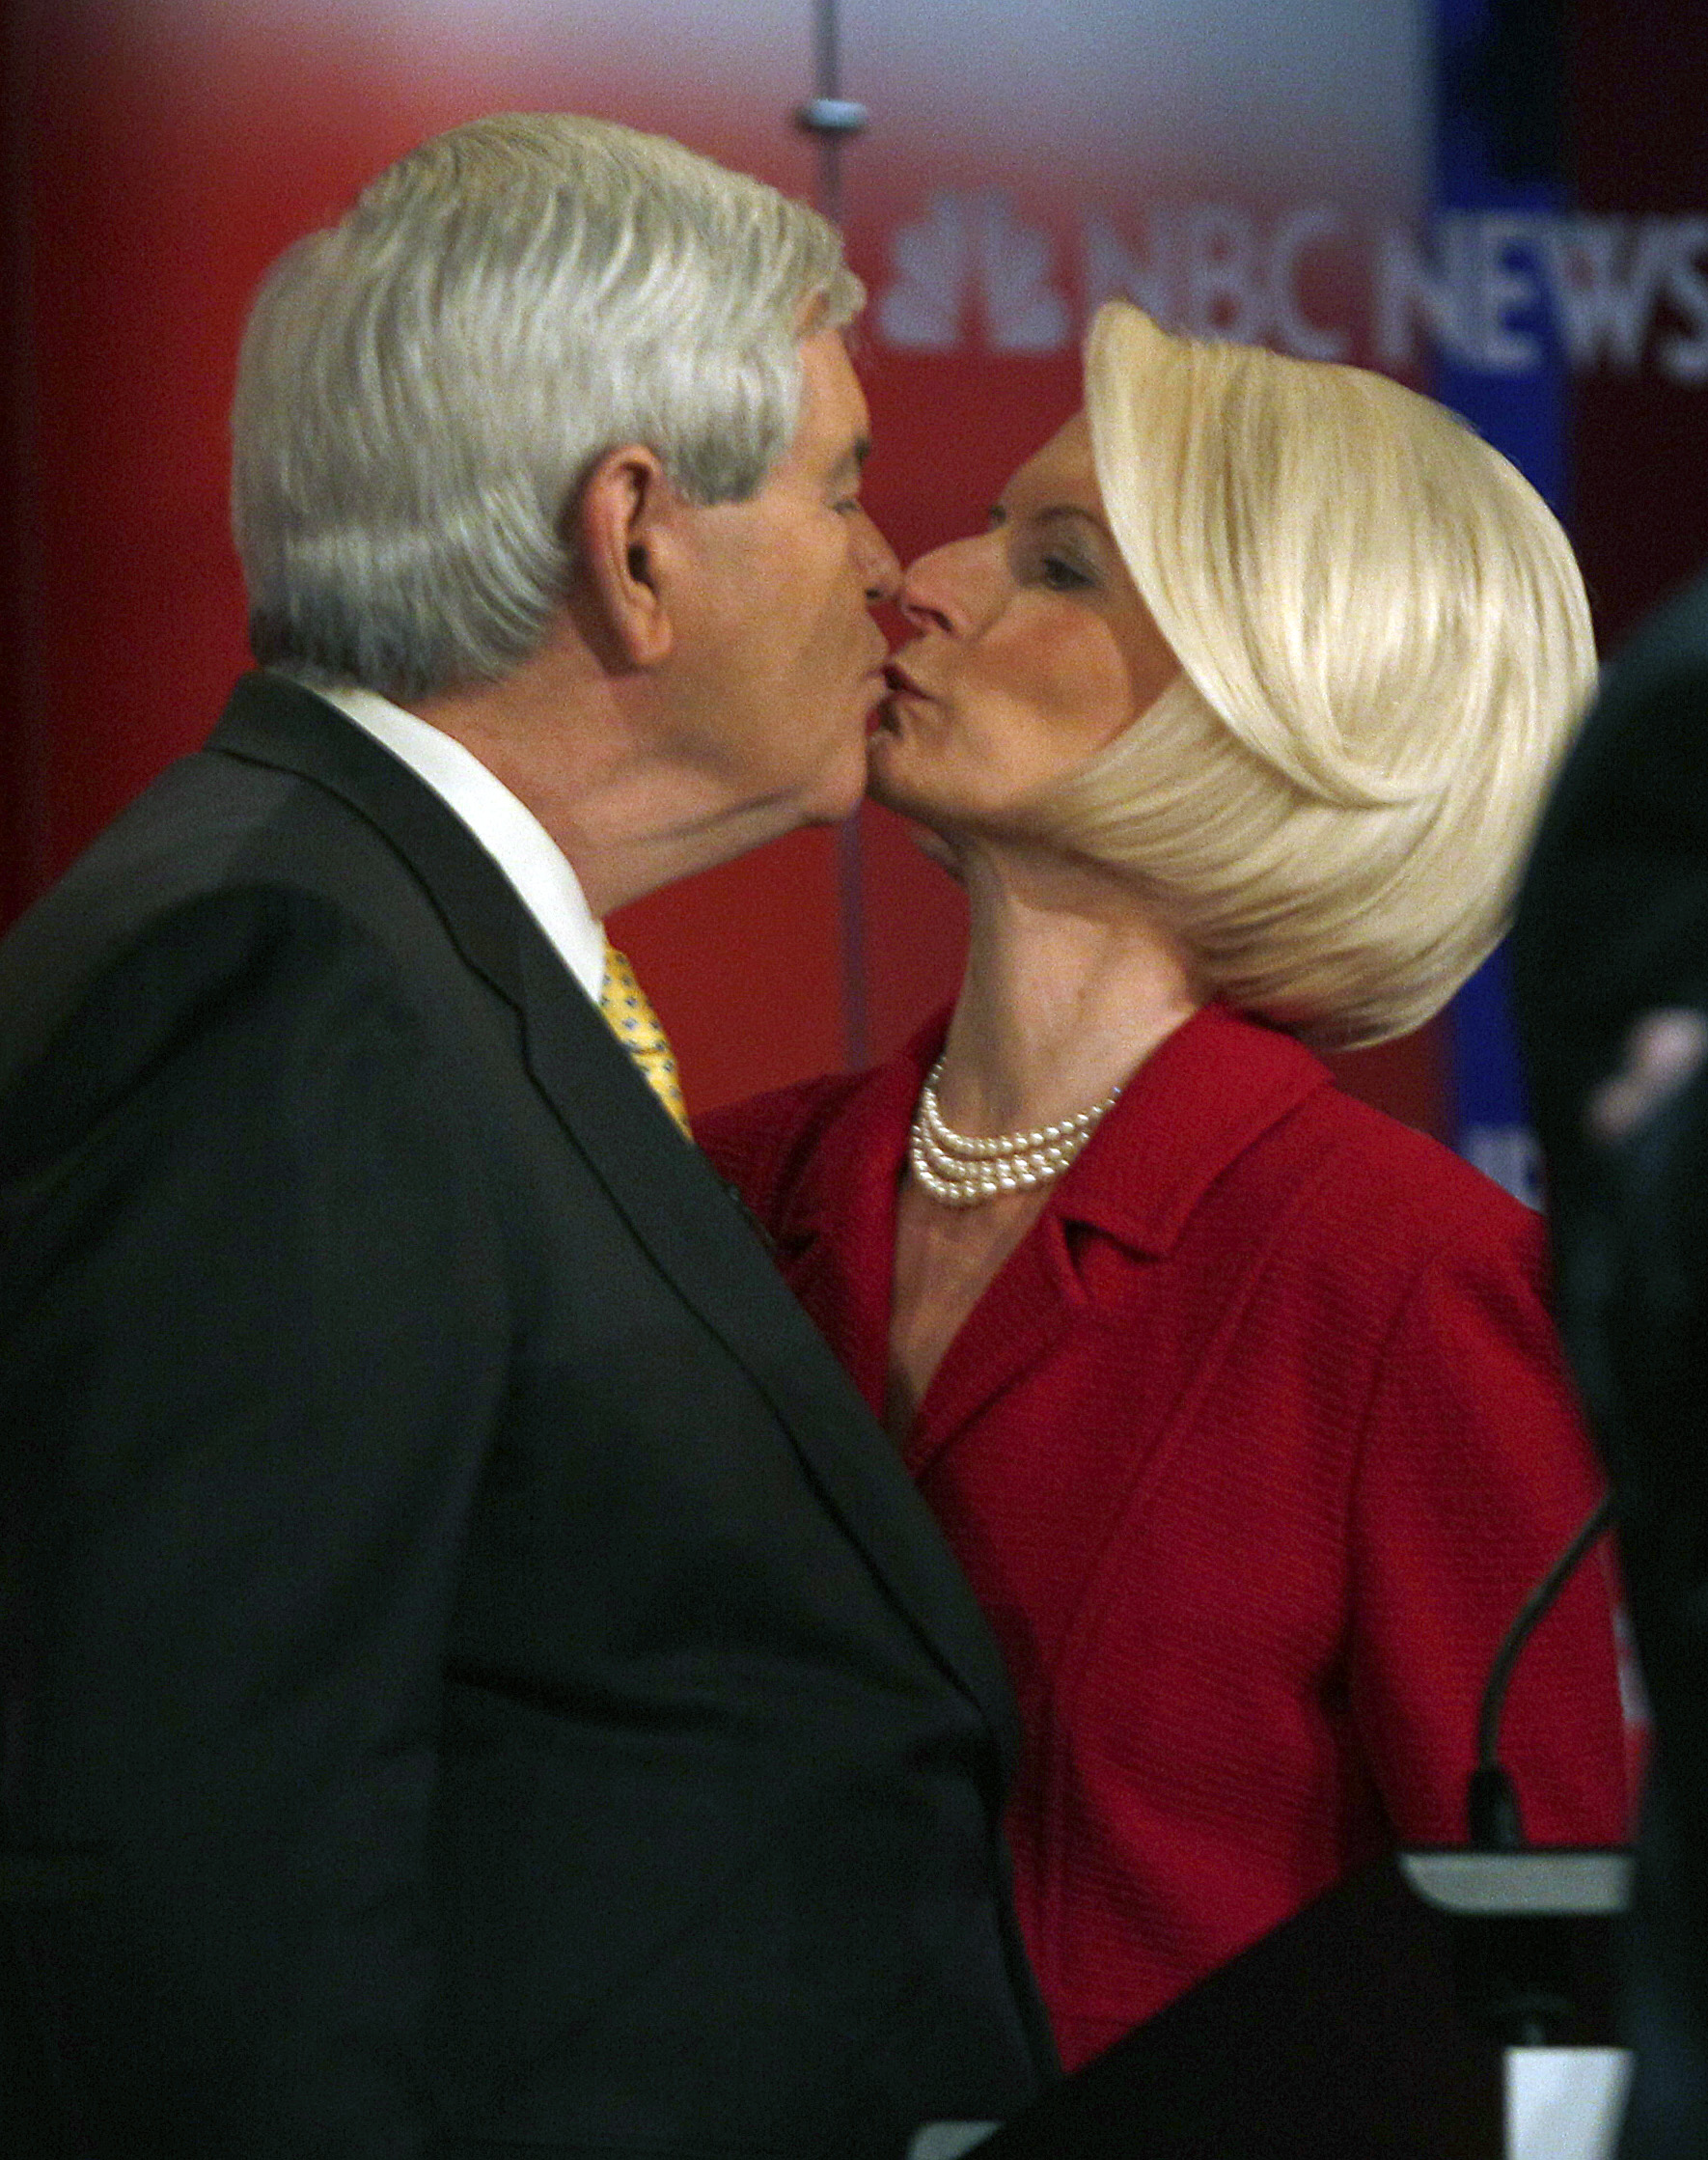 Former House Speaker Newt Gingrich kisses his wife Callista after a Republican presidential candidate debate at the Capitol Center for the Arts in Concord, N.H. on Jan. 8, 2012.